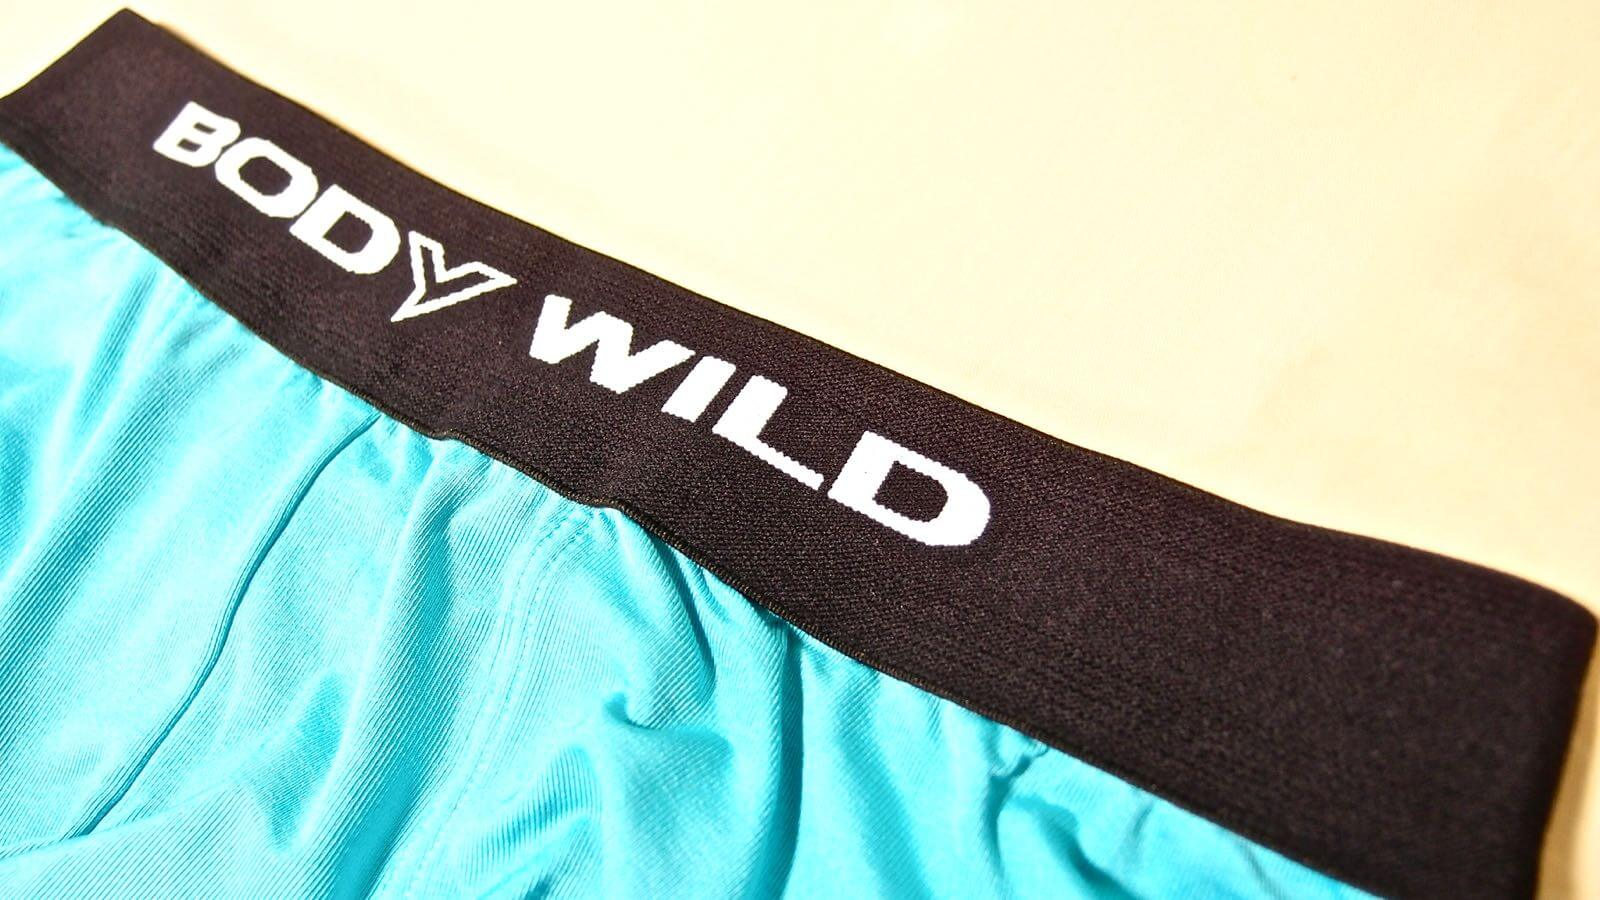 0122 Fashionable underwear BODY WILD is recommended 12